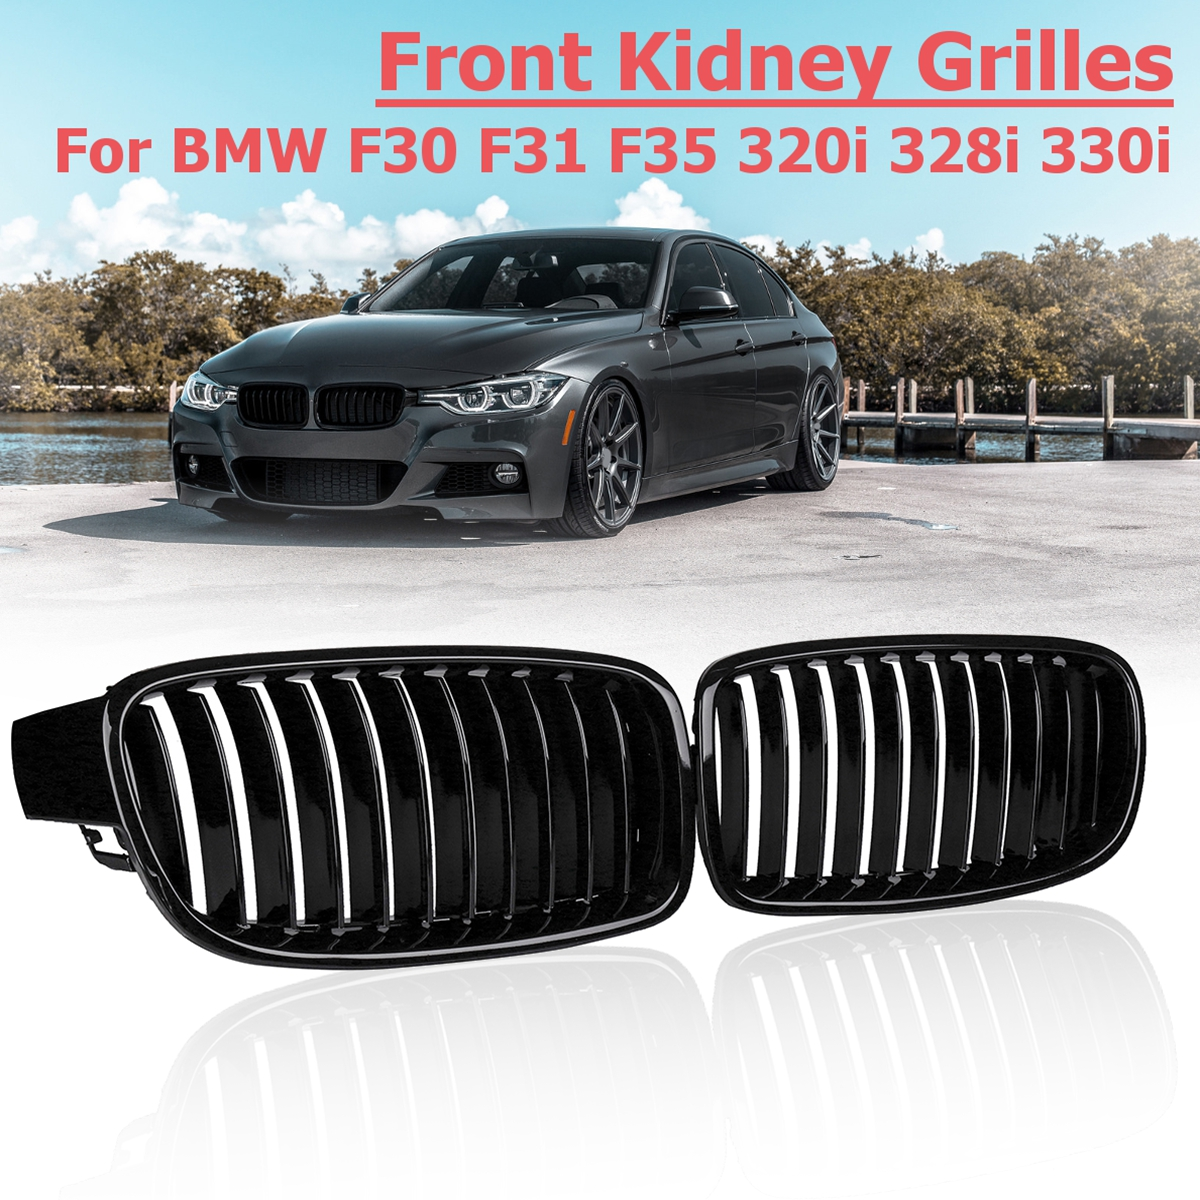 1 Pair Gloss Black Front Kidney Grilles Grill Car Styling Racing Grills replacement Grilles for BMW F30 F31 F35 320i 2012+ 1 pair gloss black front kidney grilles grill car styling racing grills replacement grilles for bmw f30 f31 f35 320i 2012